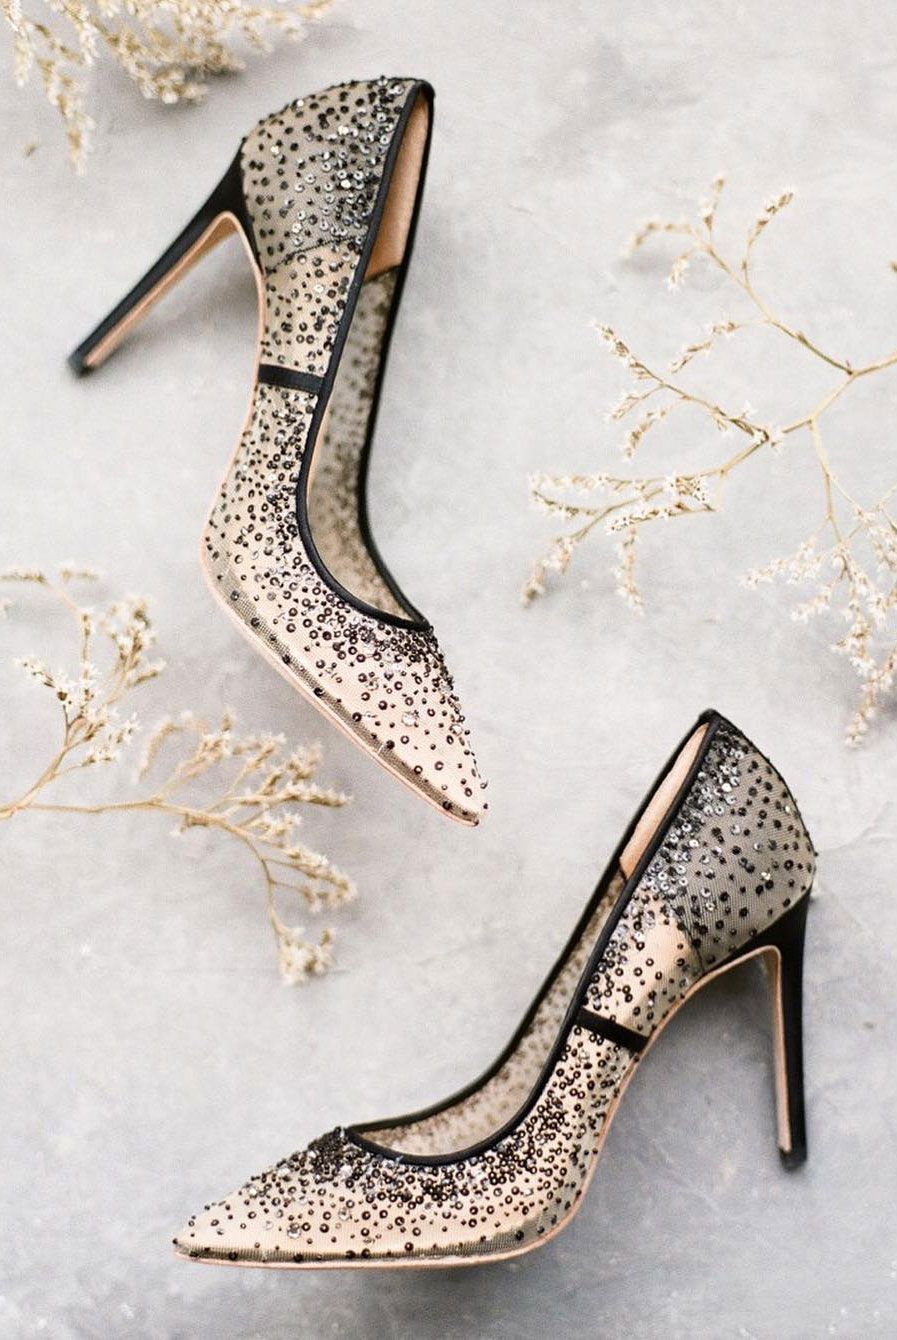 Sheer black bridal heels with crystal embellishment